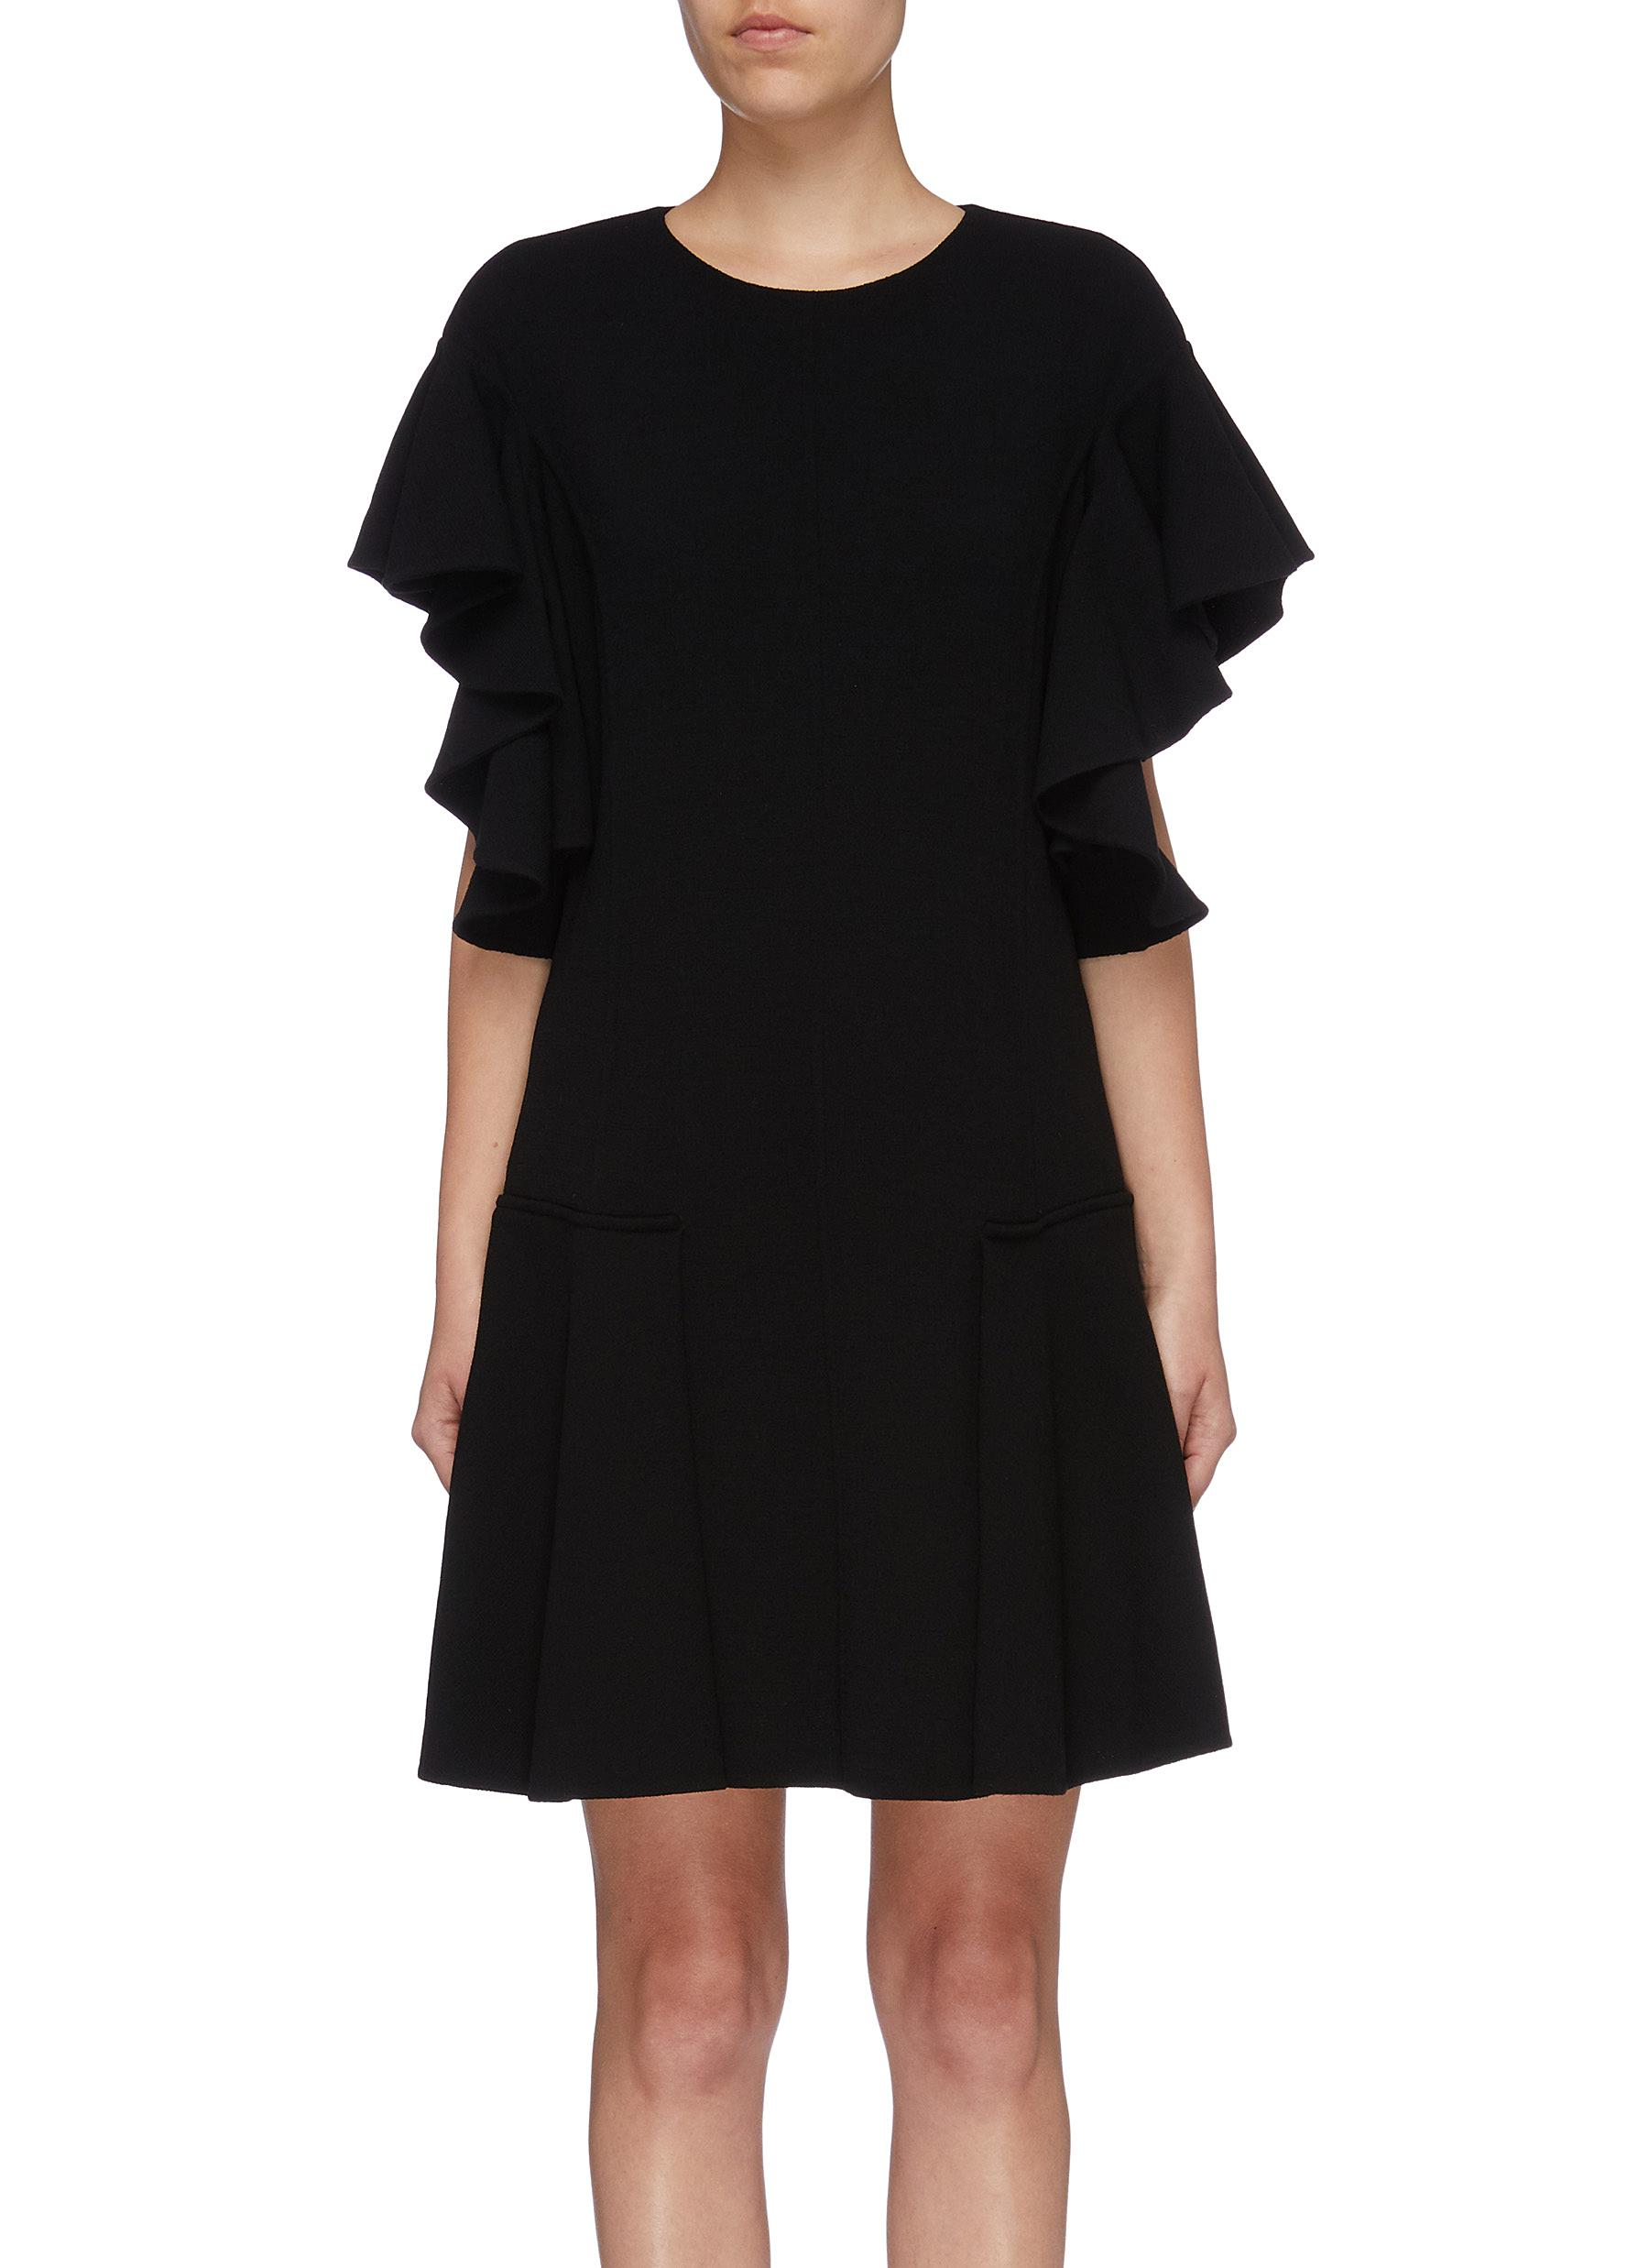 Ruffle sleeve pleated virgin wool blend knit dress by Oscar De La Renta